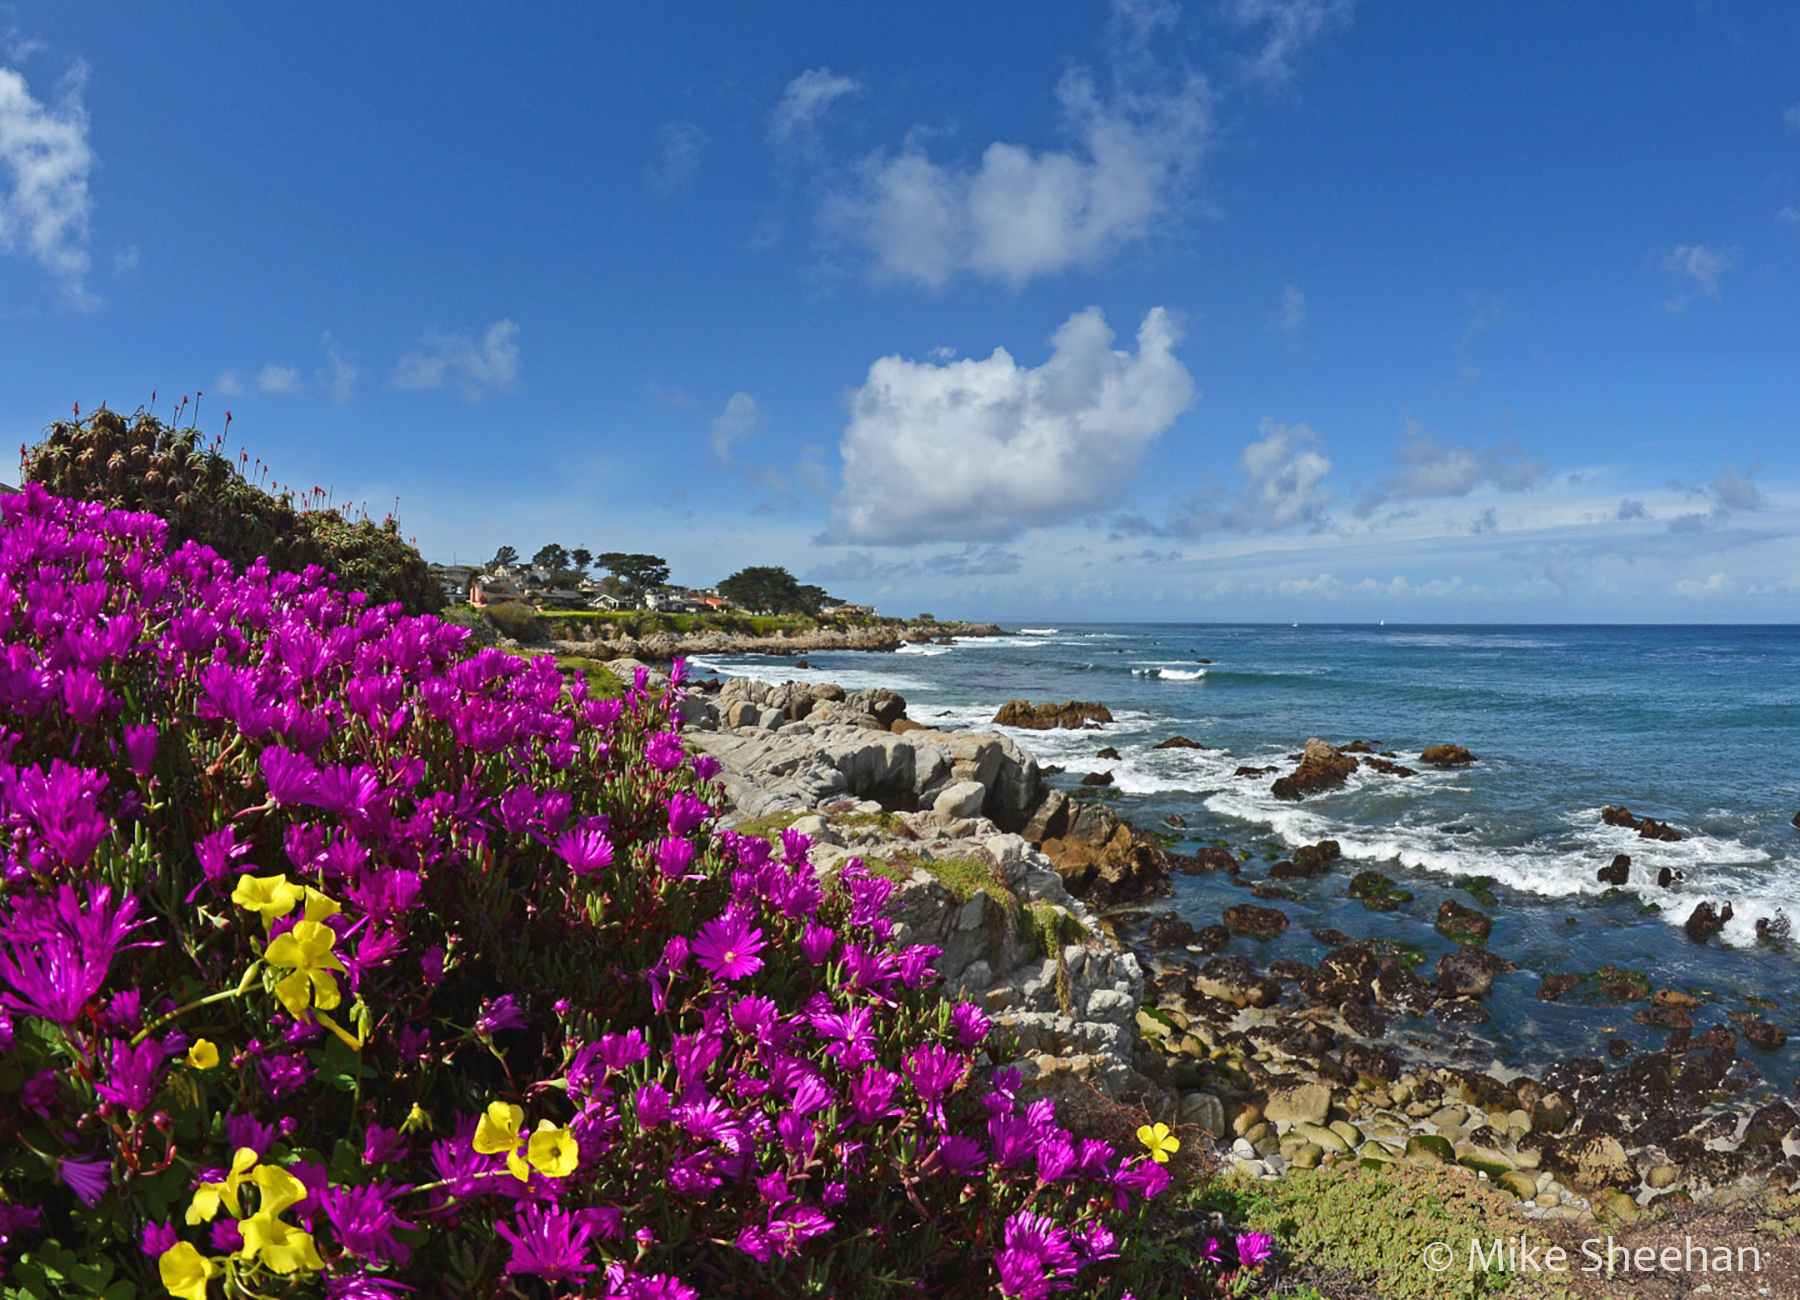 Pacific Grove by Mike Sheehan